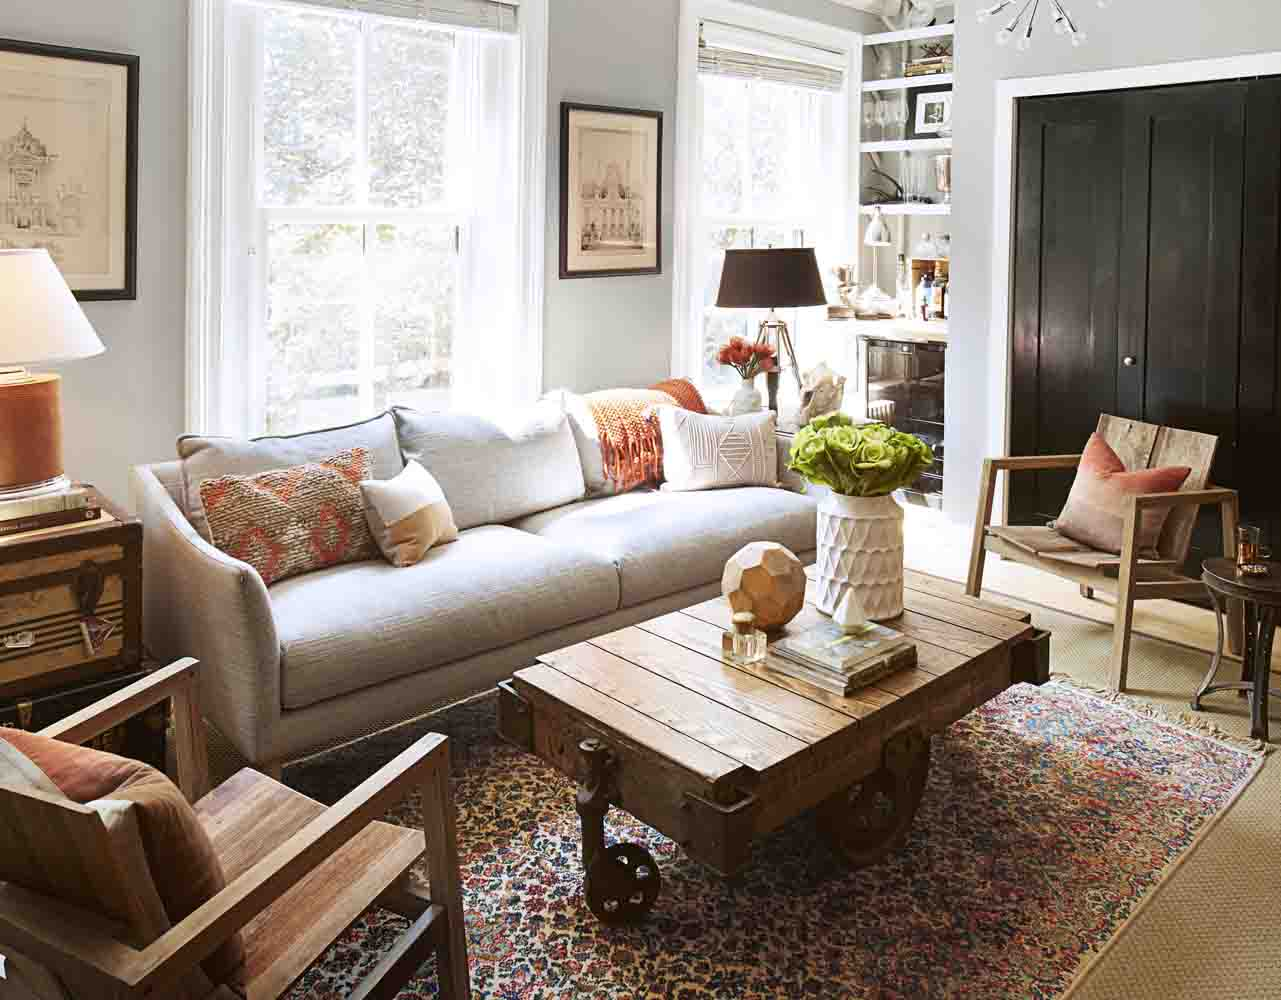 Small space decorating ideas decorating and design tips for How to decorate a sitting room